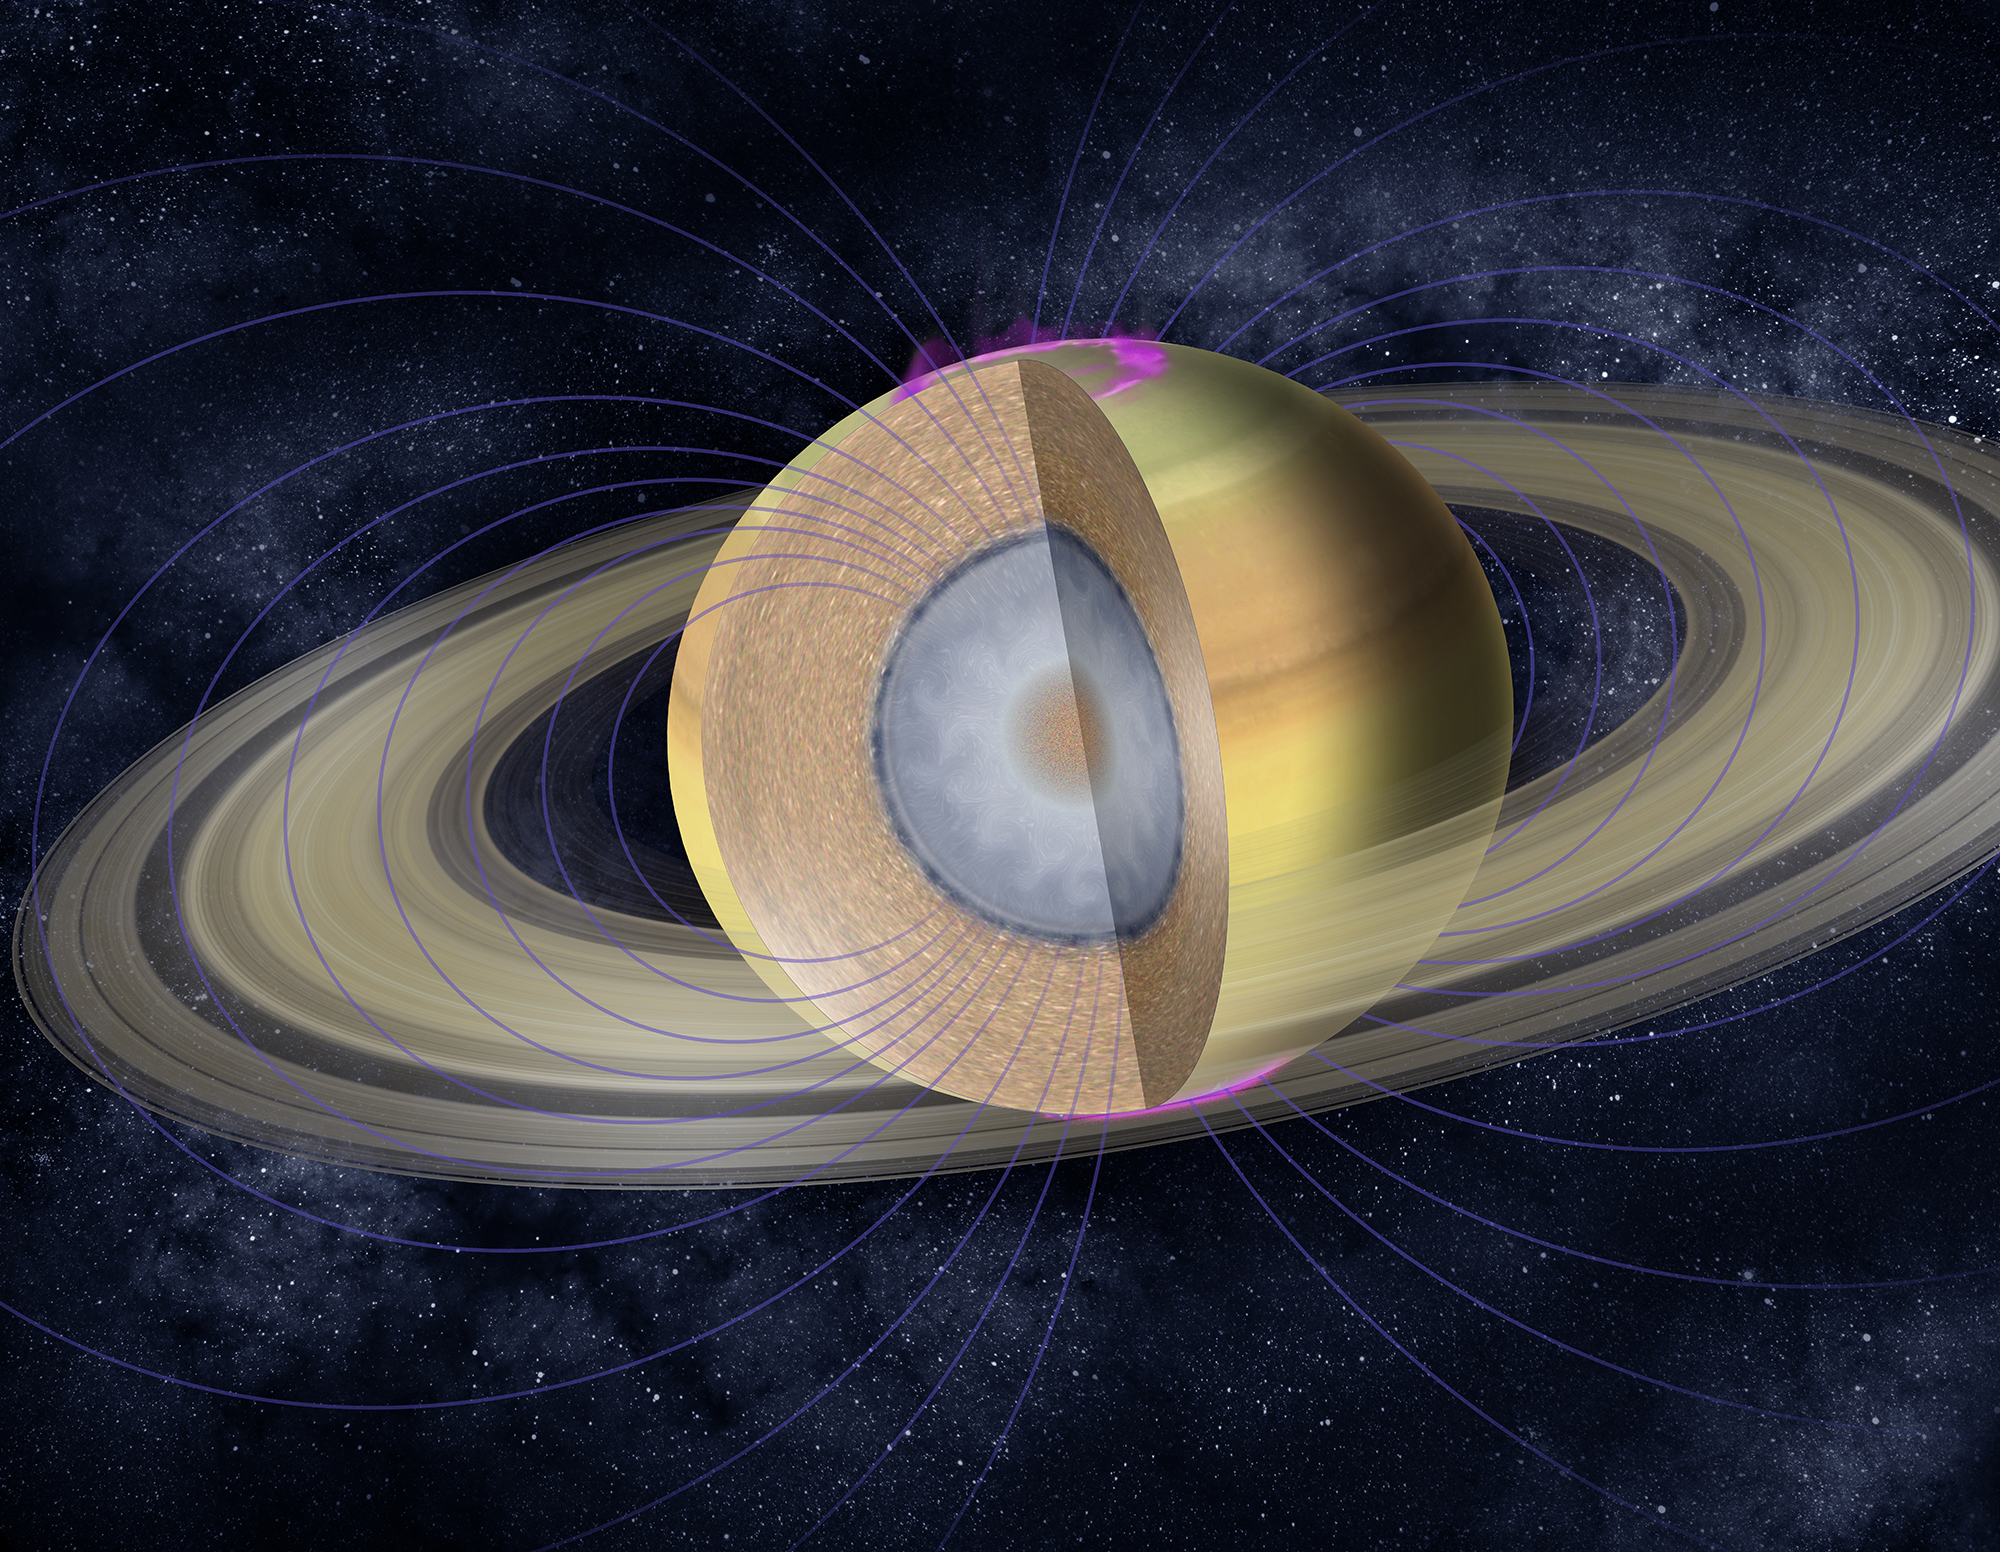 Illustration showing the layers of gas and a possible core inside Saturn.